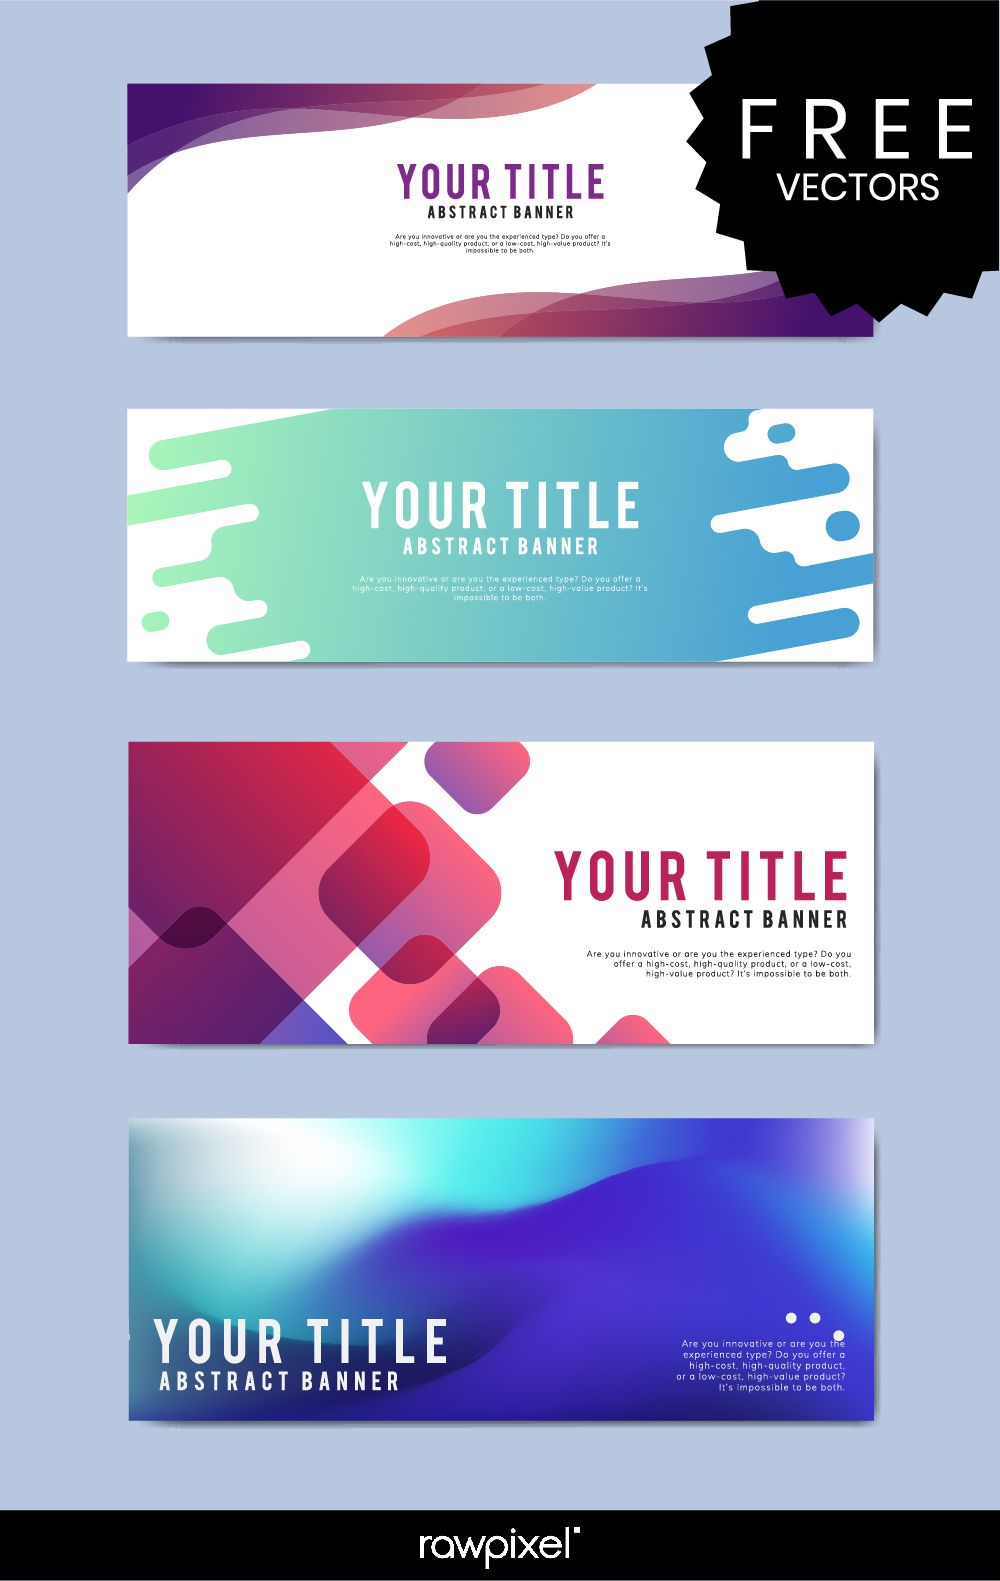 Download Free Modern Business Banner Templates At Rawpixel Com Banner Design Inspiration Website Banner Design Web Banner Design